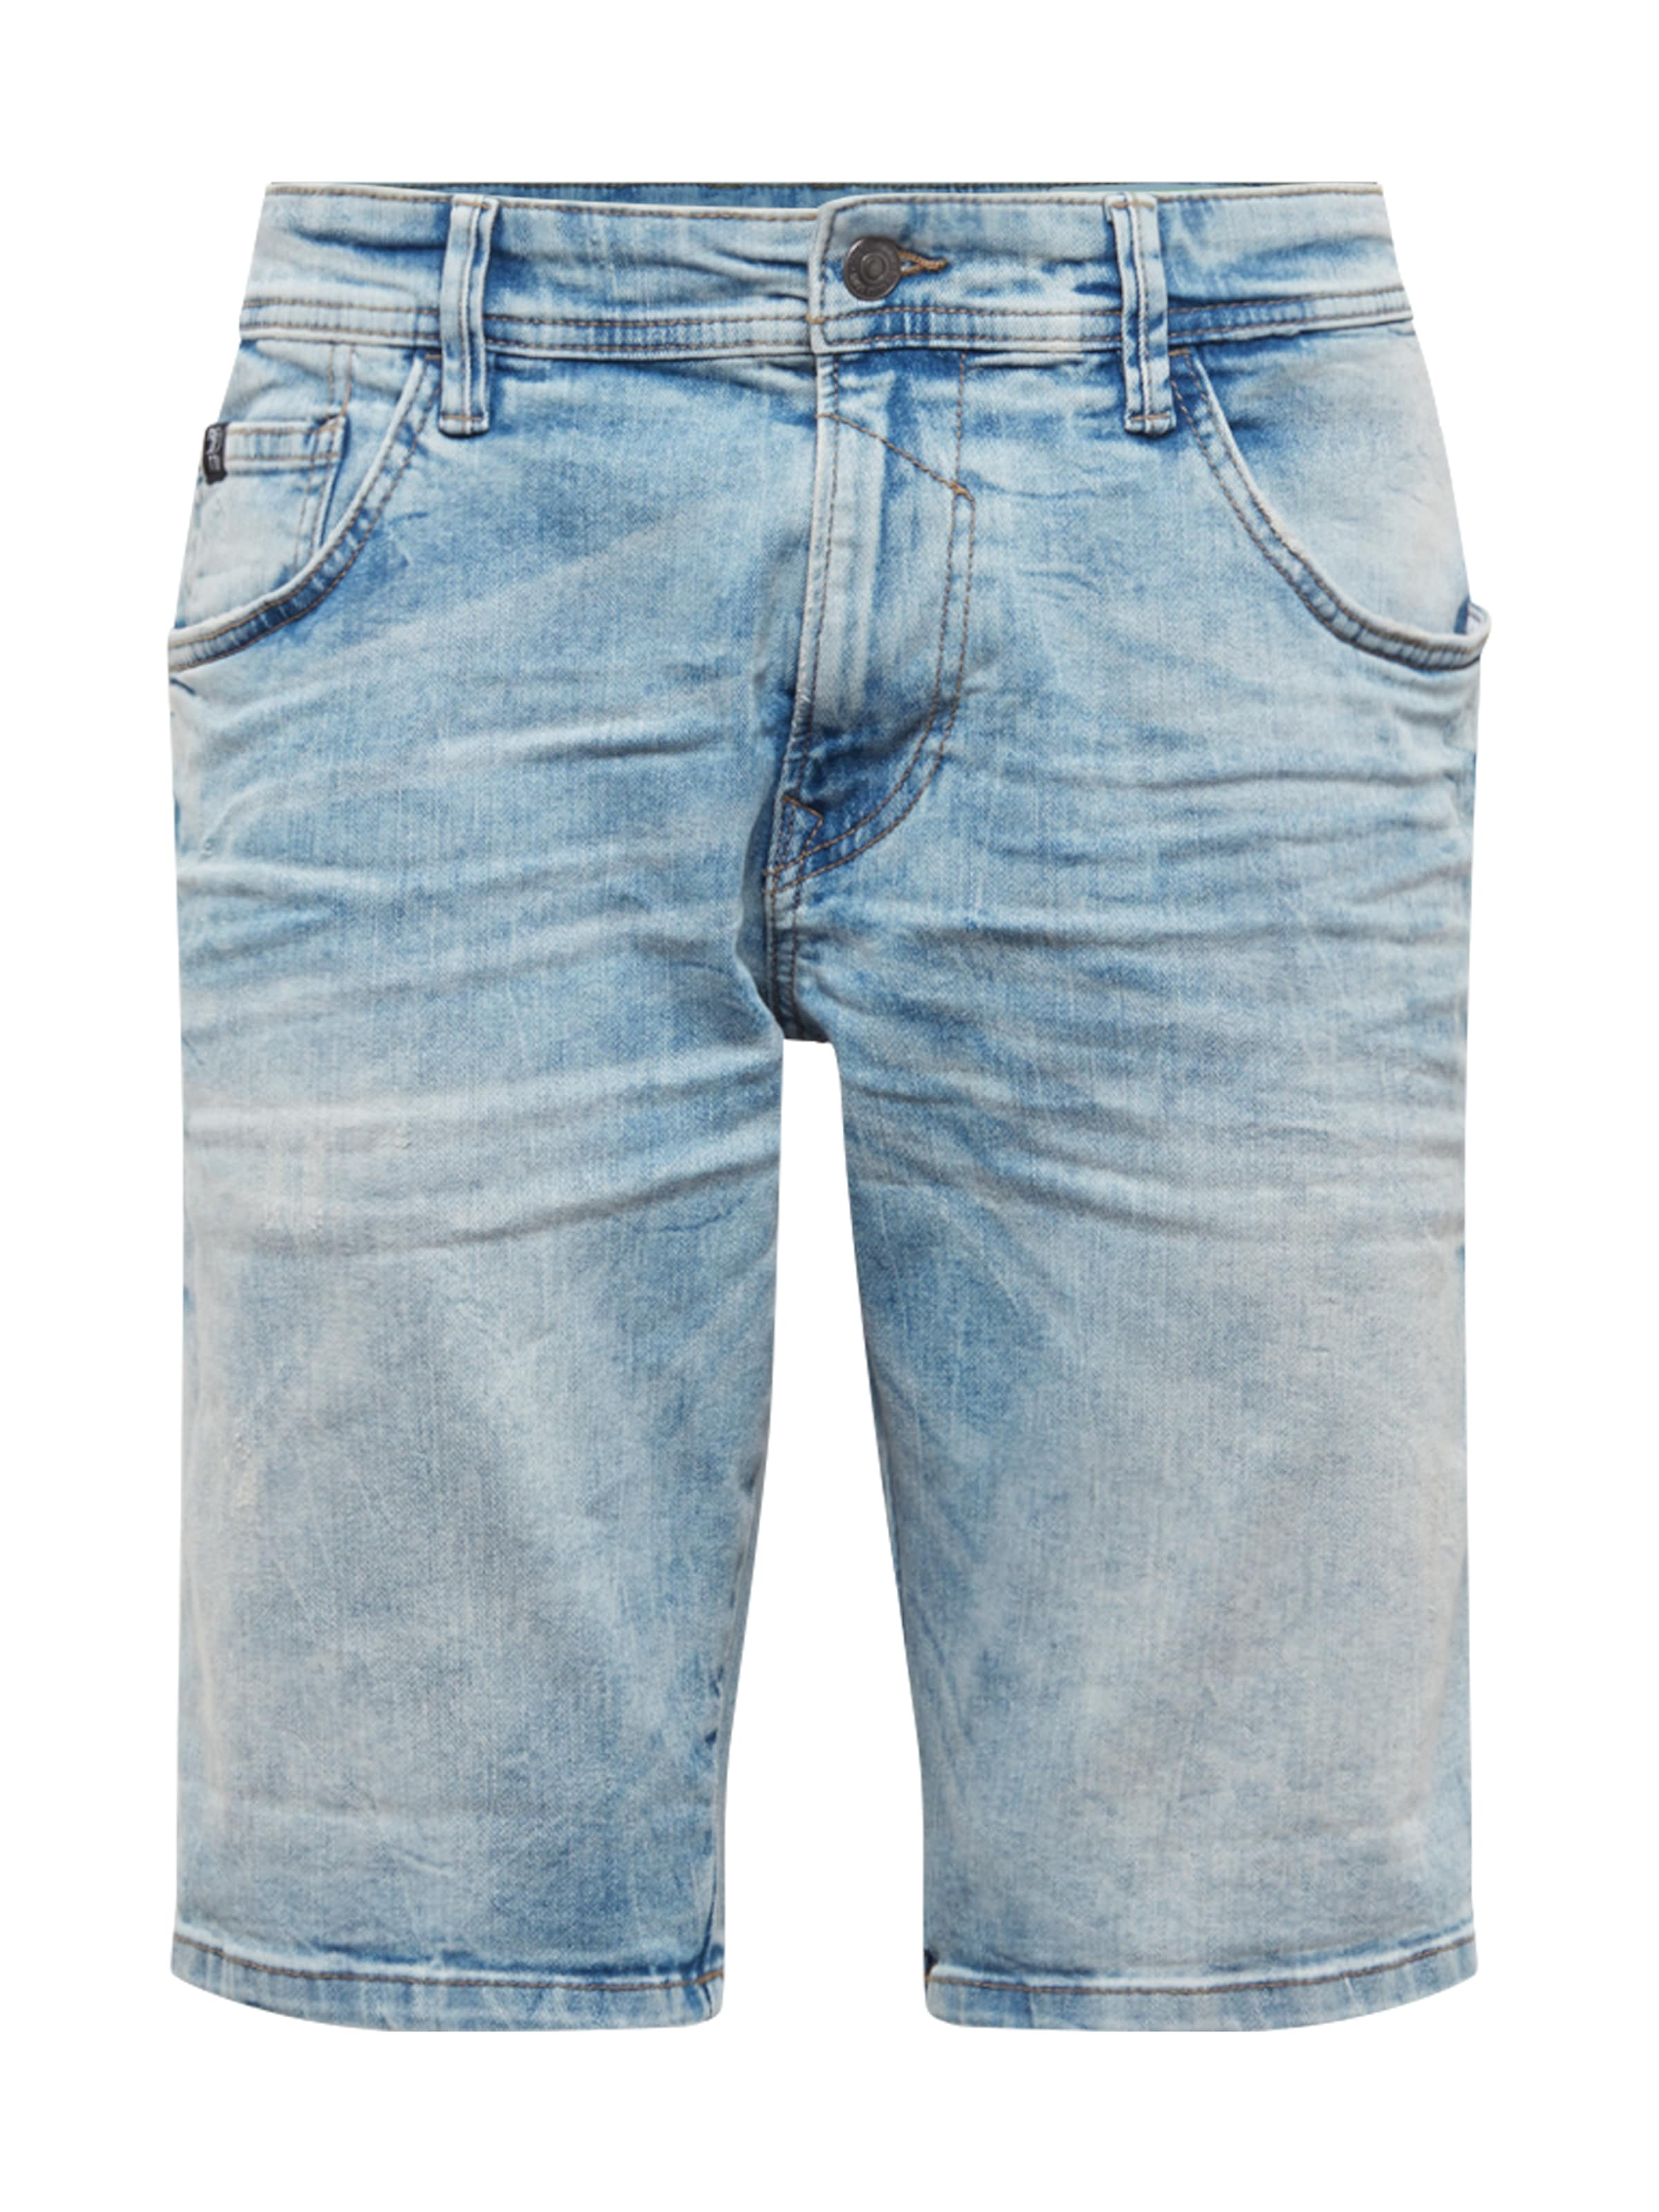 Jeansshorts Denim Blue Tom Tailor In 0mwNvn8O